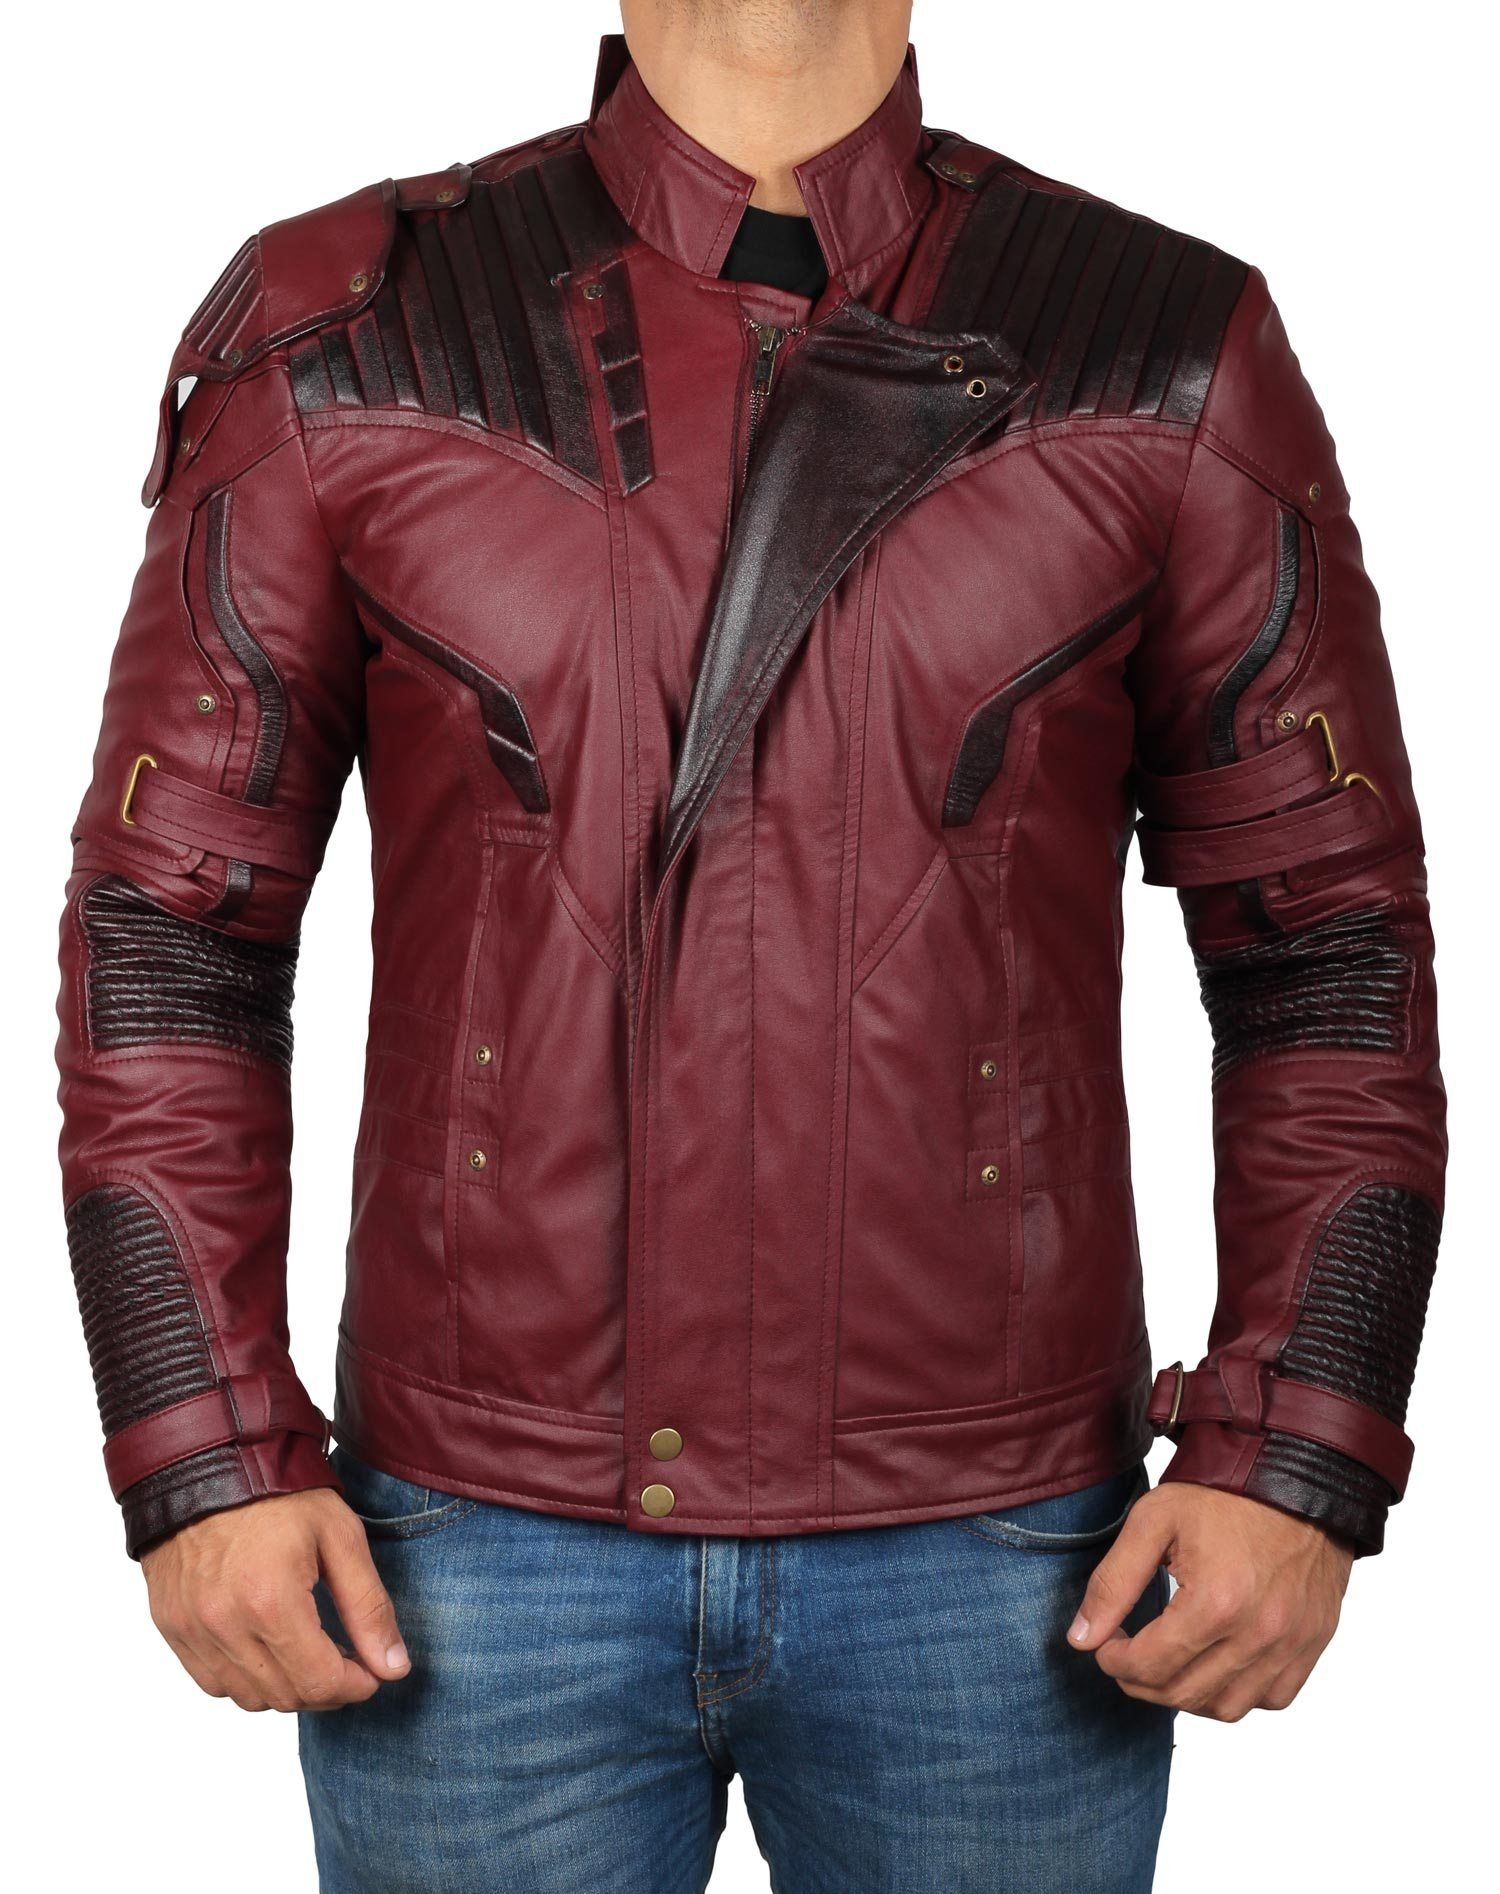 Avengers Infinity War Star Lord Maroon Jacket | PU Waxed Jacket, L by Decrum